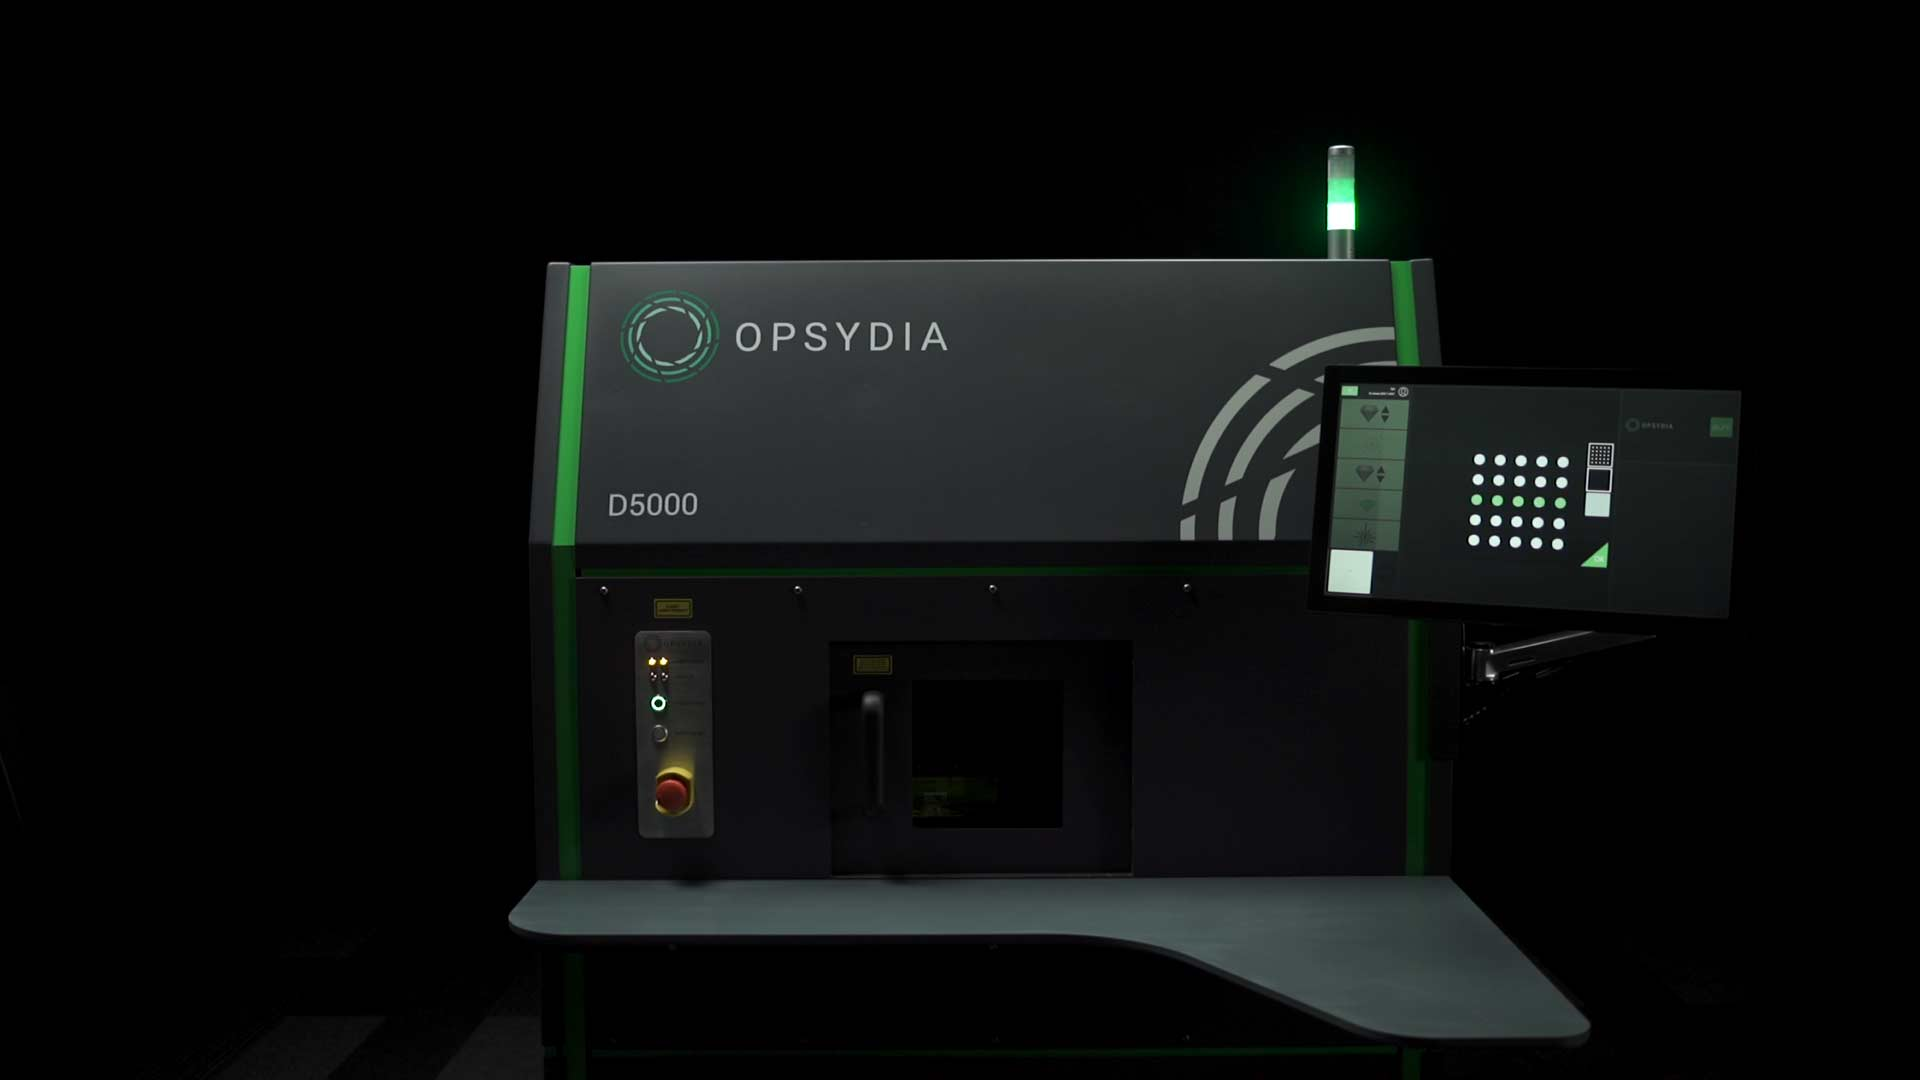 The Opsydia System